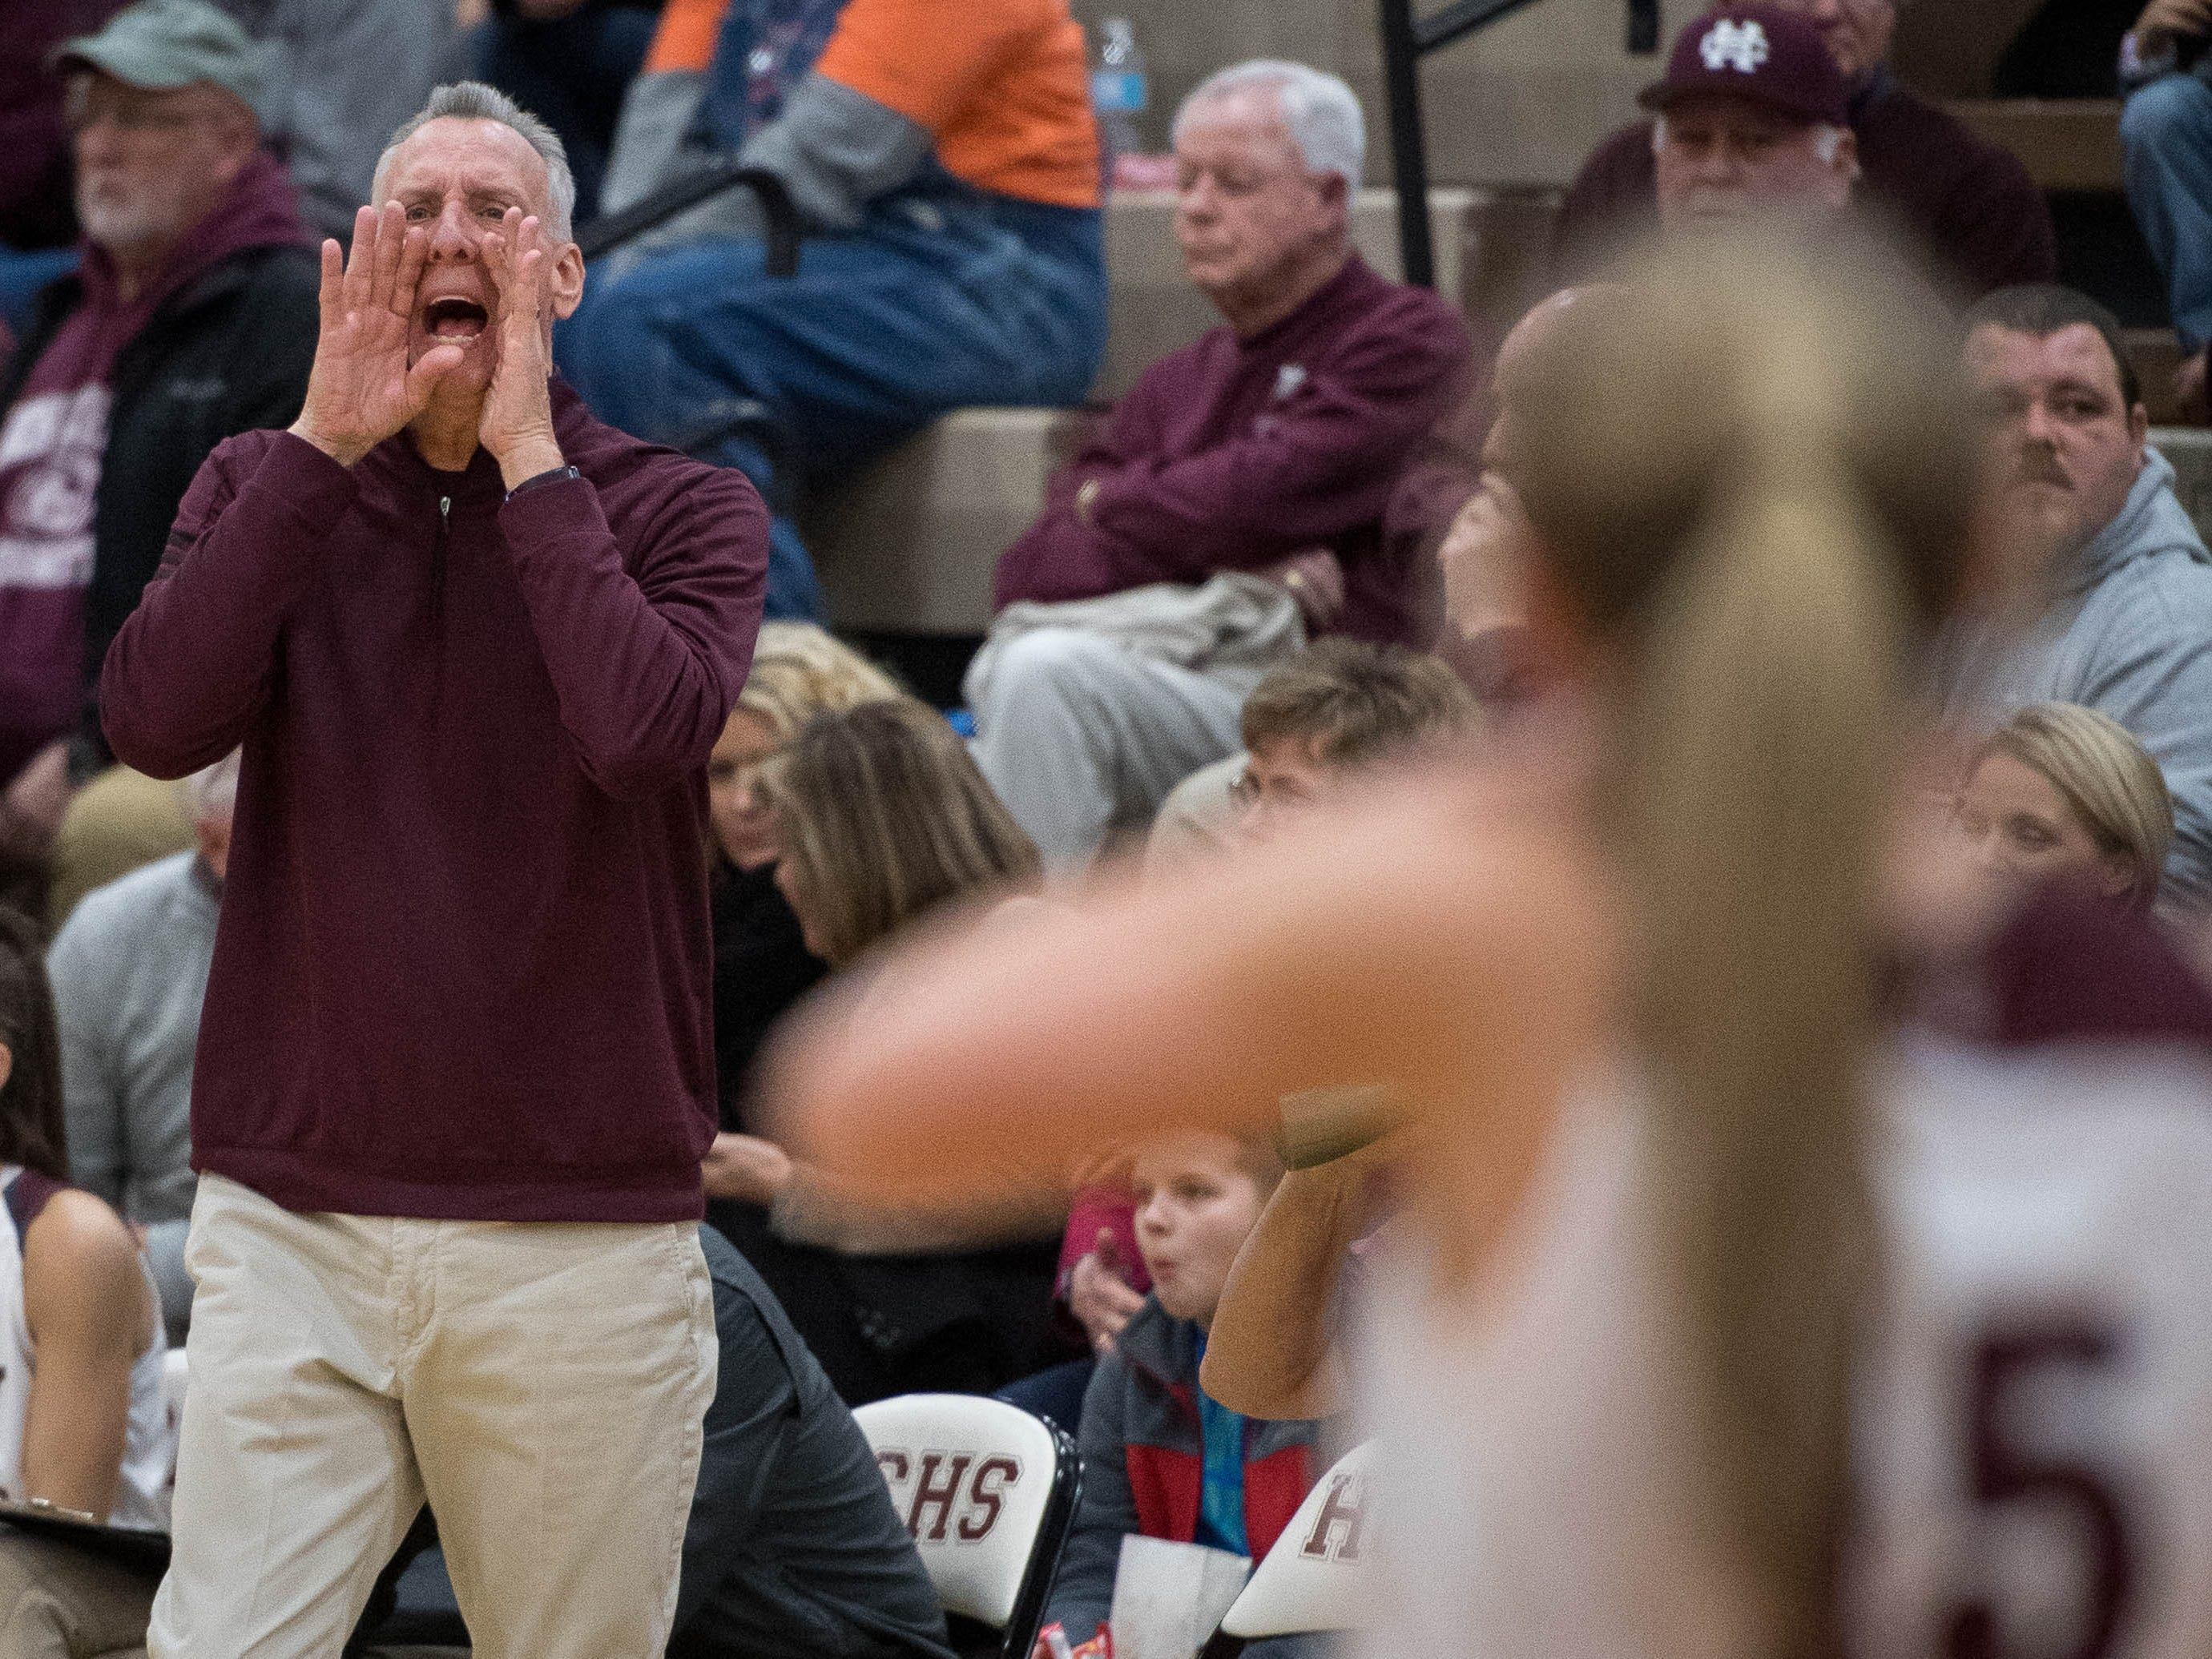 Henderson County Head Coach Jeff Haile directs his team as district rivals Union County Bravettes play the Henderson County Lady Colonels at Colonel Gym in Henderson Tuesday, January 29, 2019.